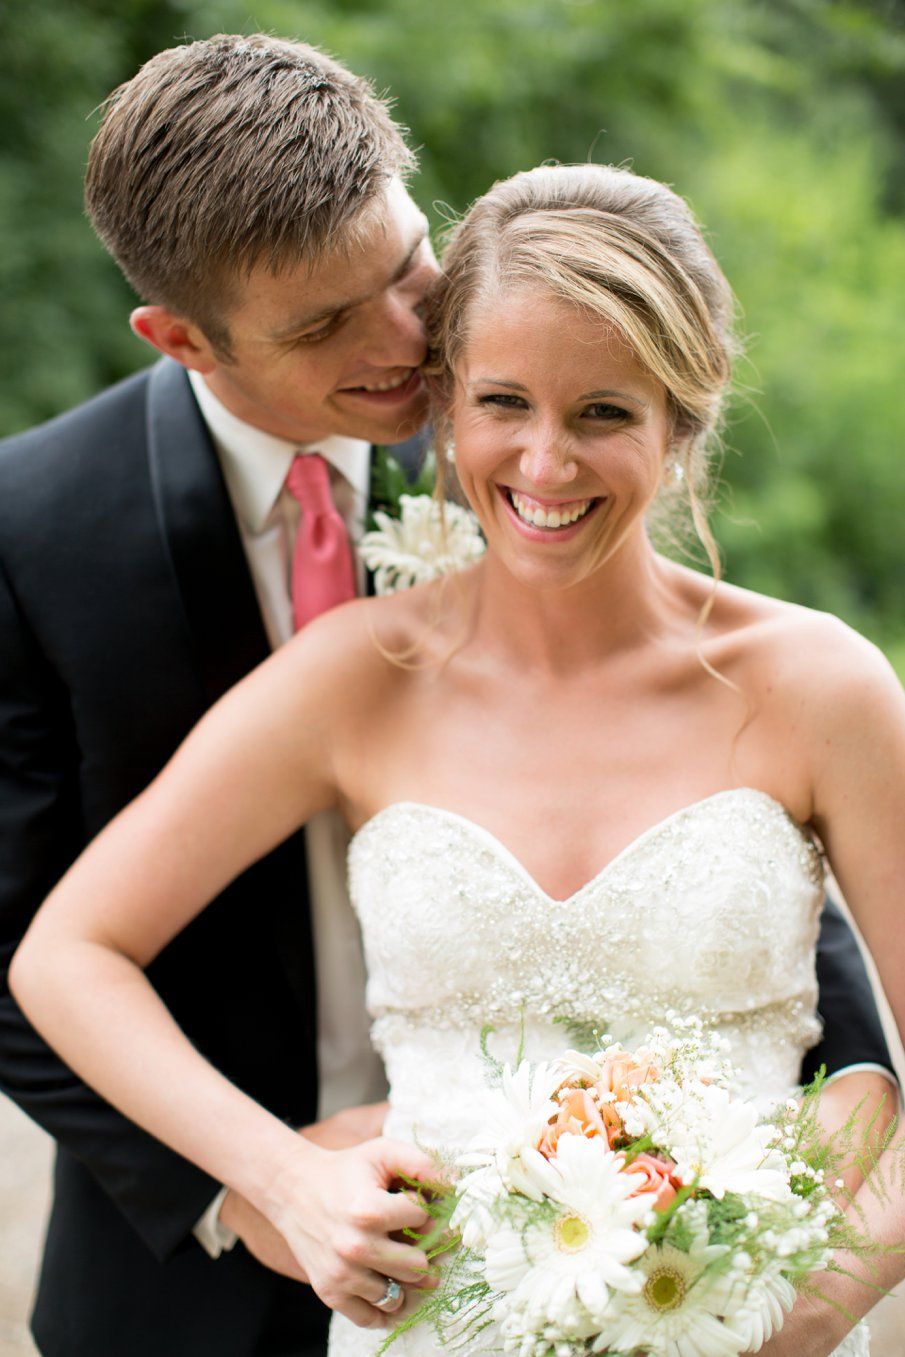 Alice Hq Photography |Courtney + Tyler Mankato MN Wedding14.jpg